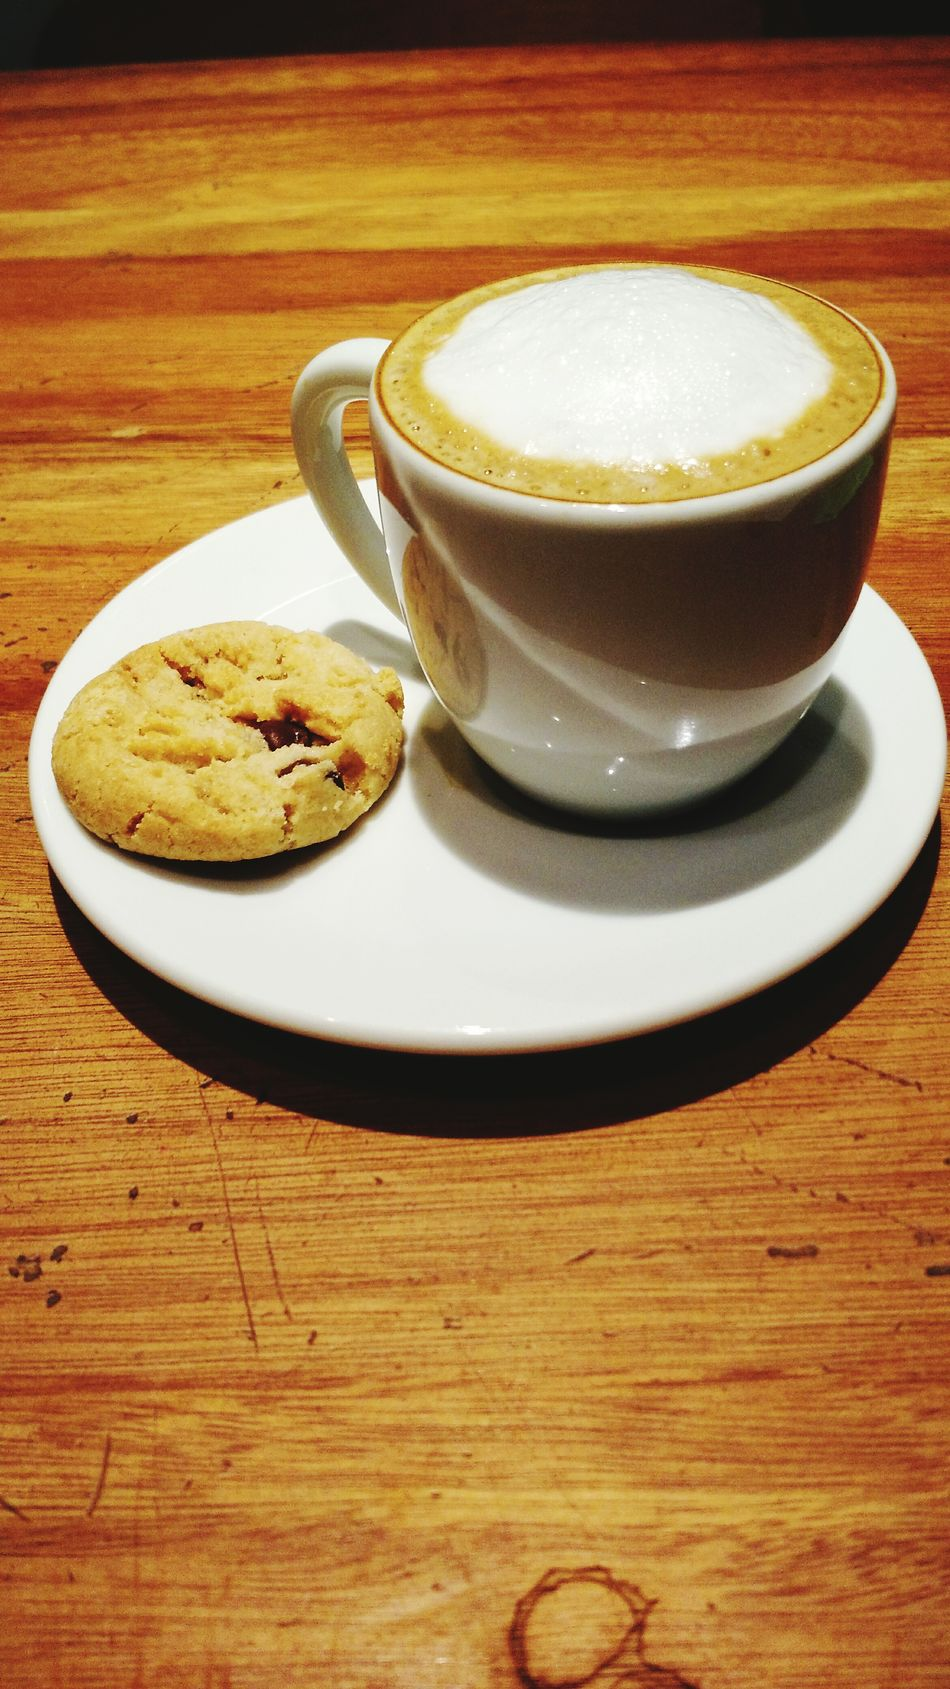 Table Coffee Cup Drink Food And Drink Refreshment Close-up Indoors  No People Ready-to-eat Day Food Happyday Good Afternoon Energy